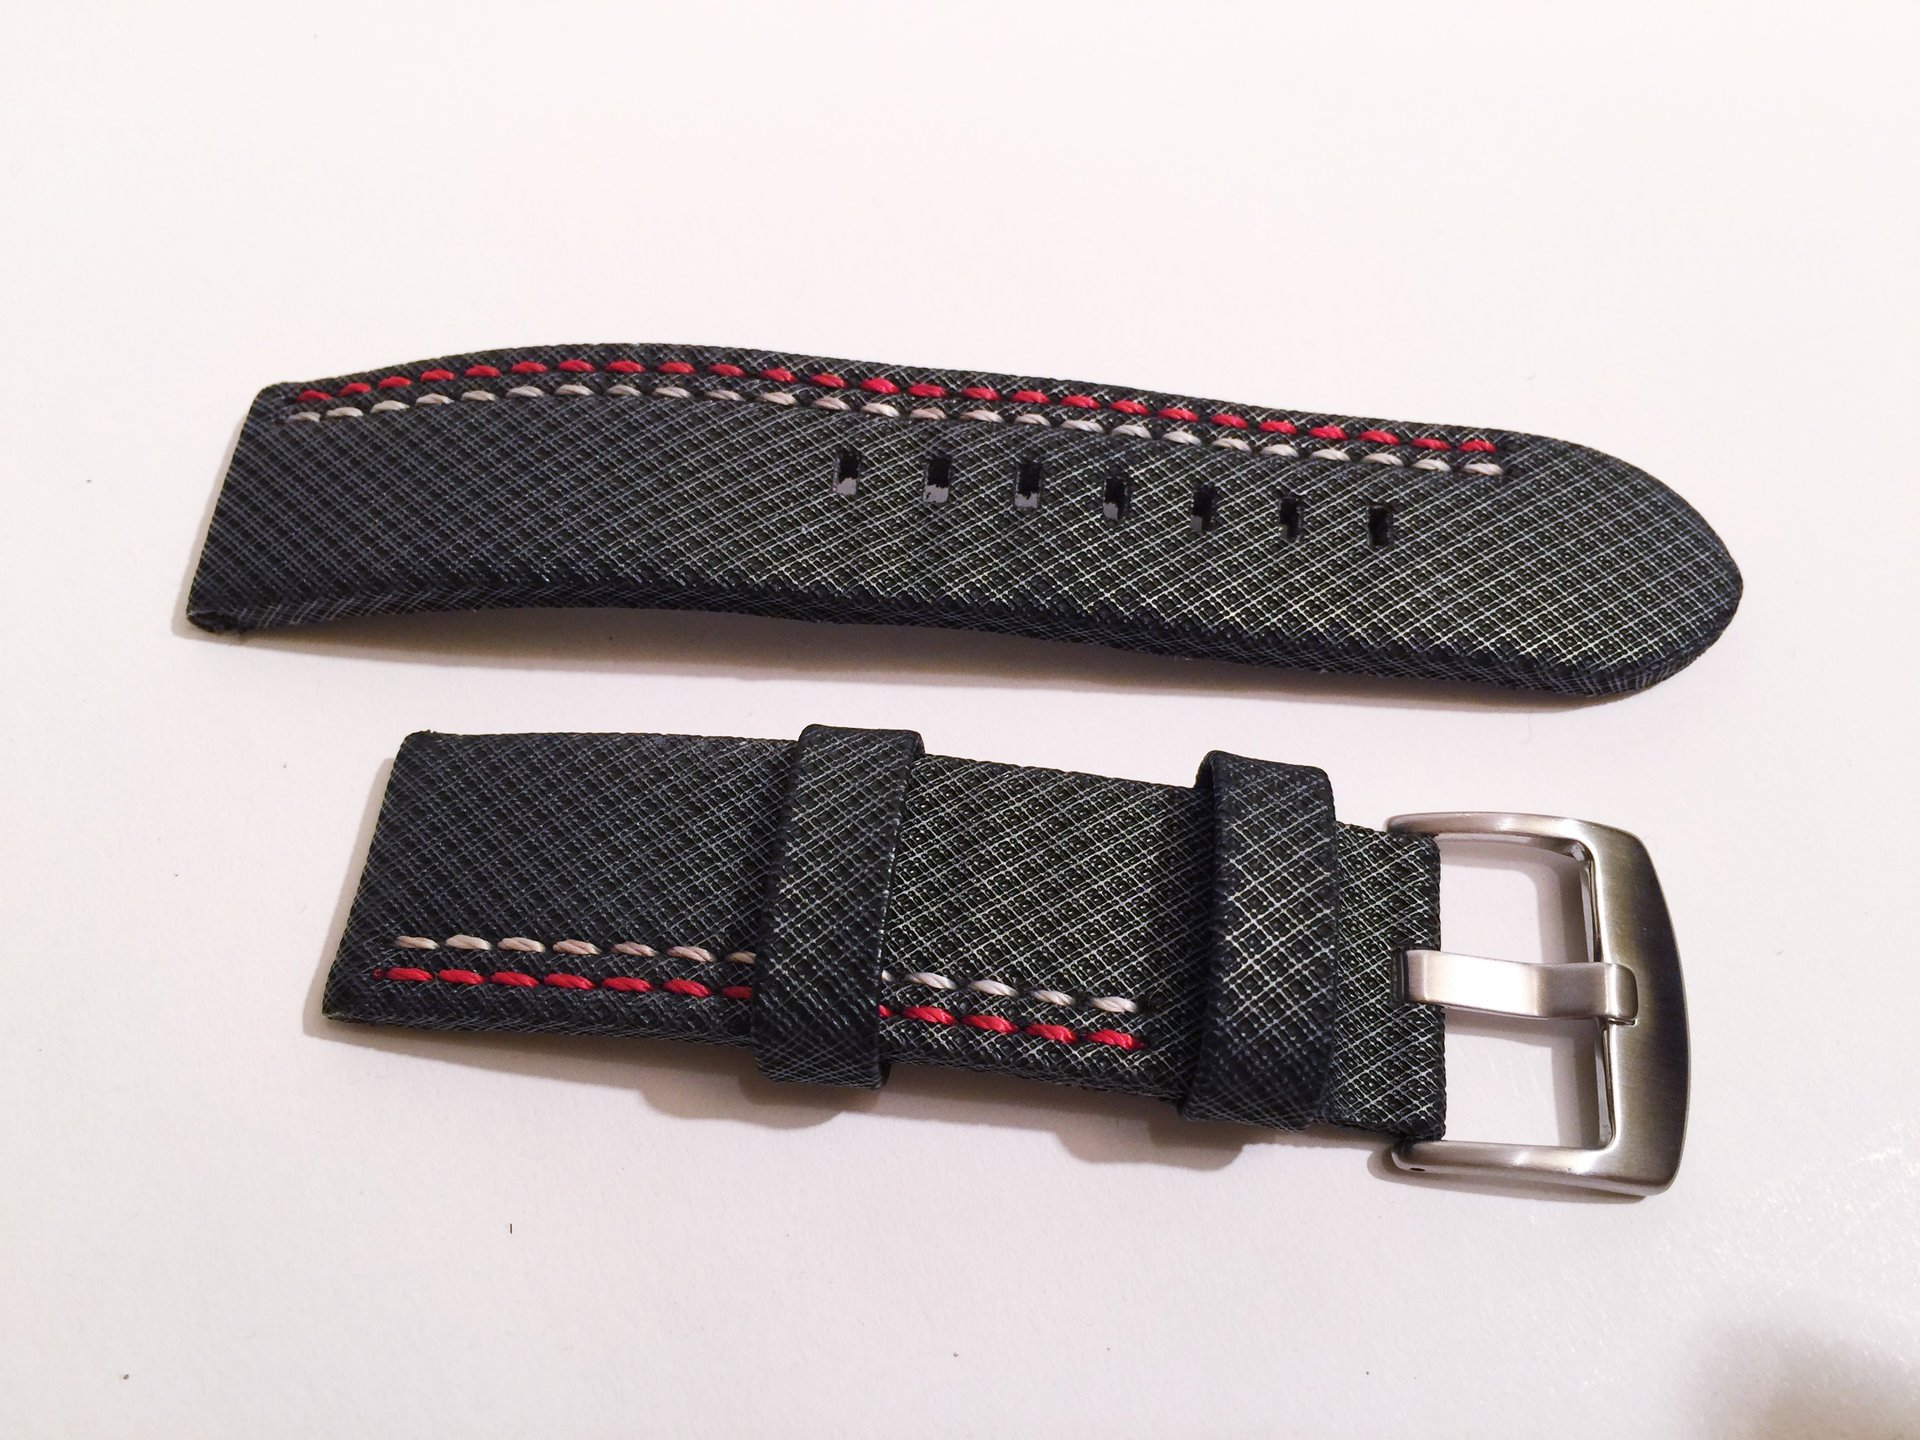 reserviert uhrenarmband mit dornschlie e 22mm mit rot. Black Bedroom Furniture Sets. Home Design Ideas